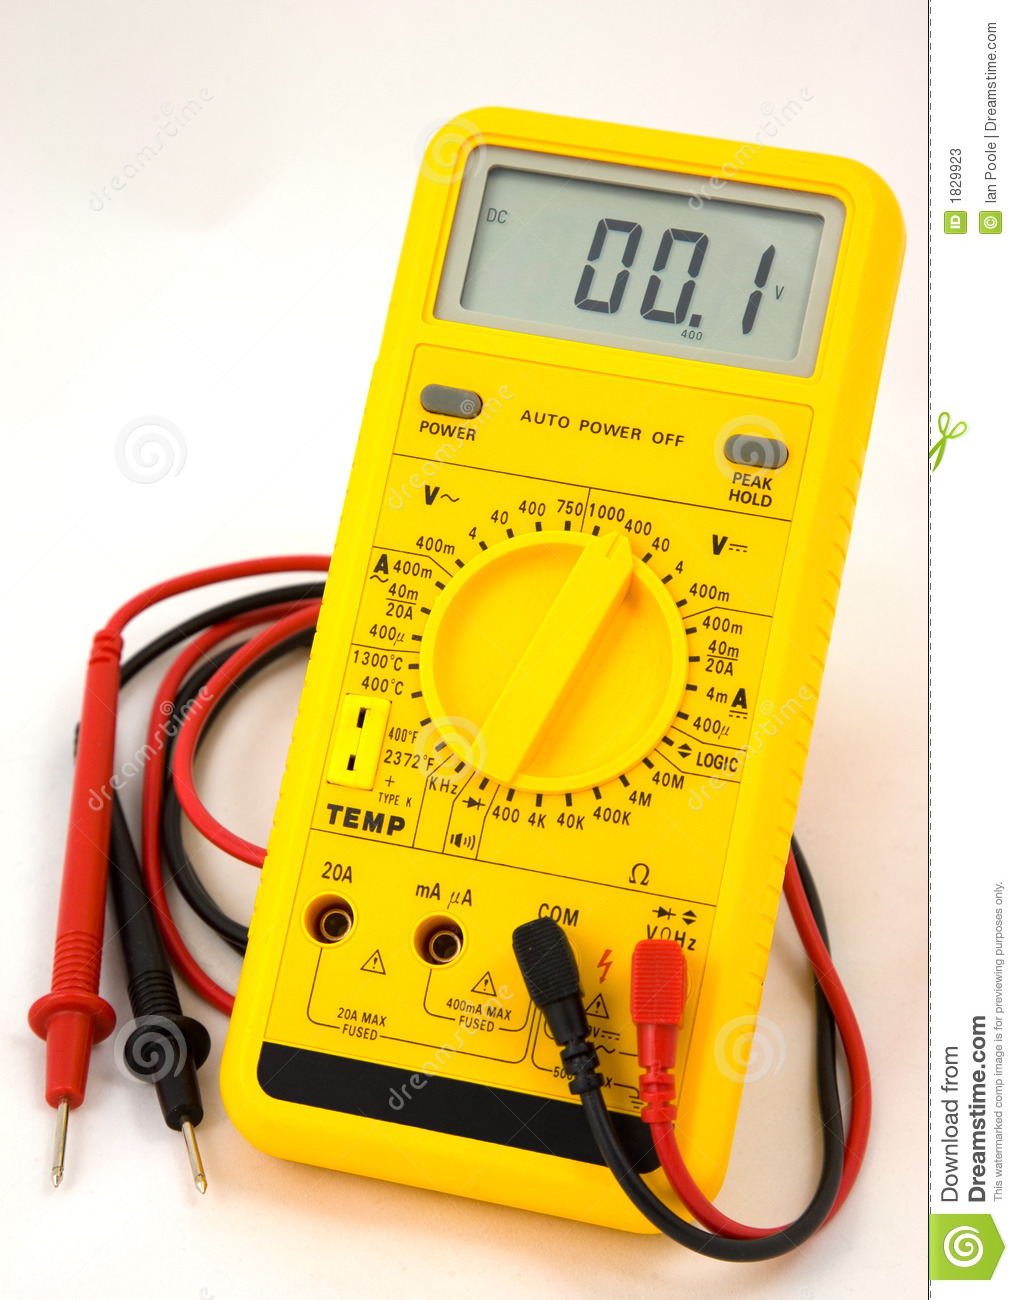 Digital Multimeter Meter Reading : Digital multimeter stock photos image